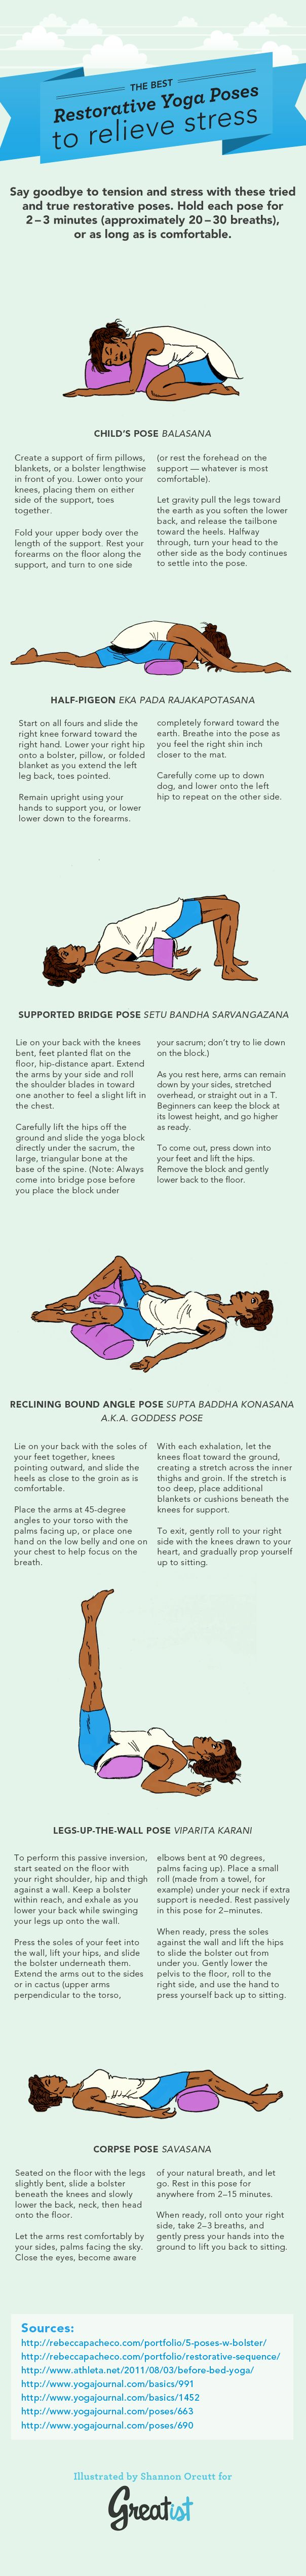 The Best Restorative Yoga Poses to Relieve Stress [INFOGRAPHIC] | Greatist #Yoga #Restorative #Stress